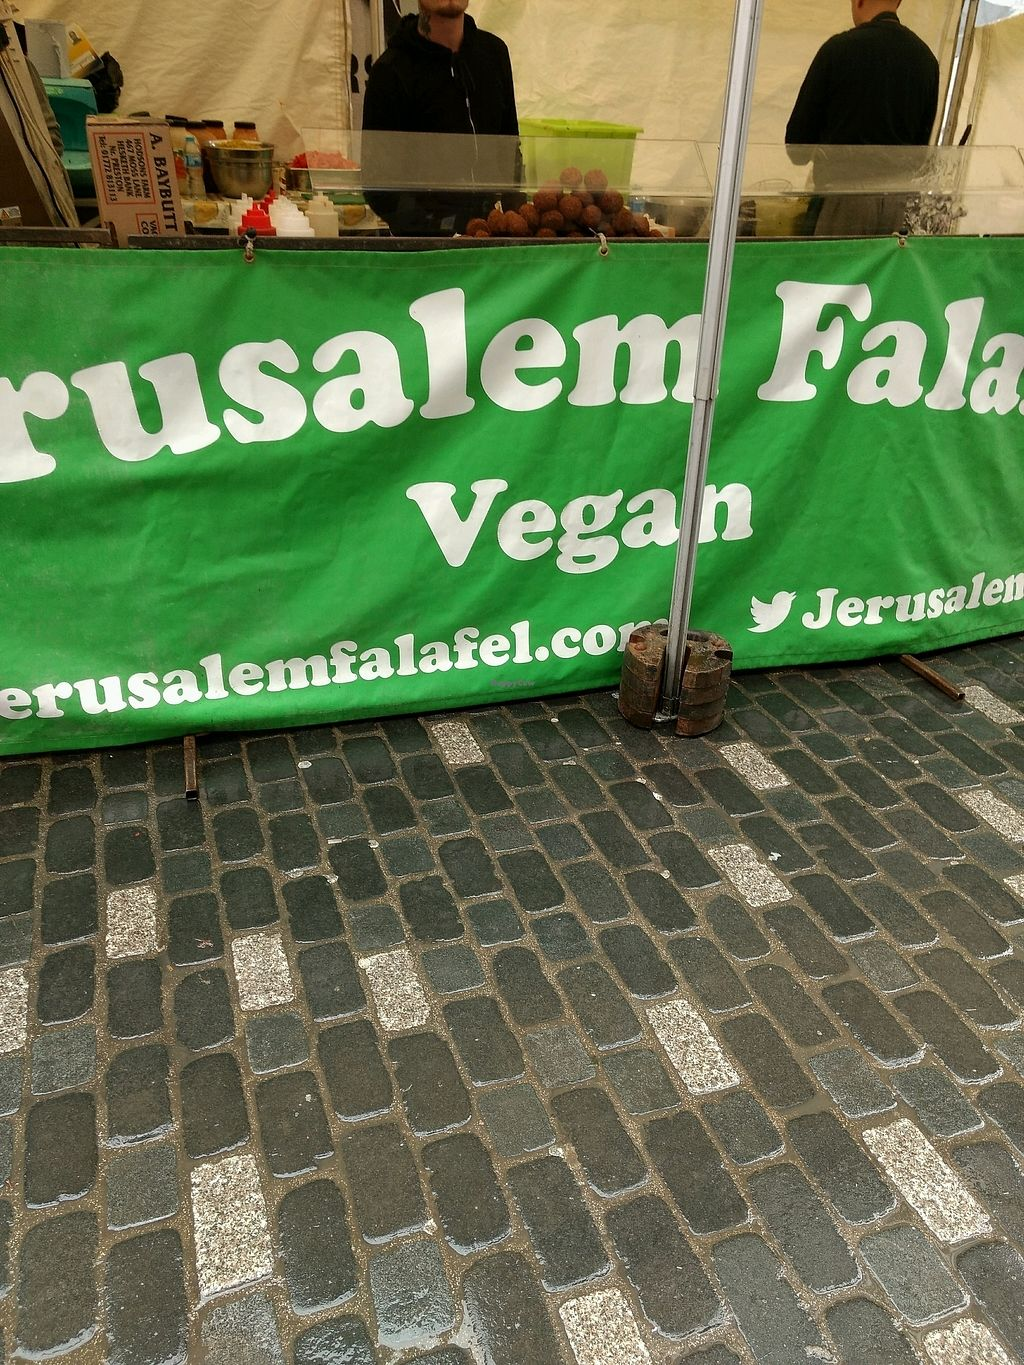 """Photo of Jerusalem Falafel - Food Stall  by <a href=""""/members/profile/craigmc"""">craigmc</a> <br/>vegan <br/> October 19, 2017  - <a href='/contact/abuse/image/77117/316567'>Report</a>"""